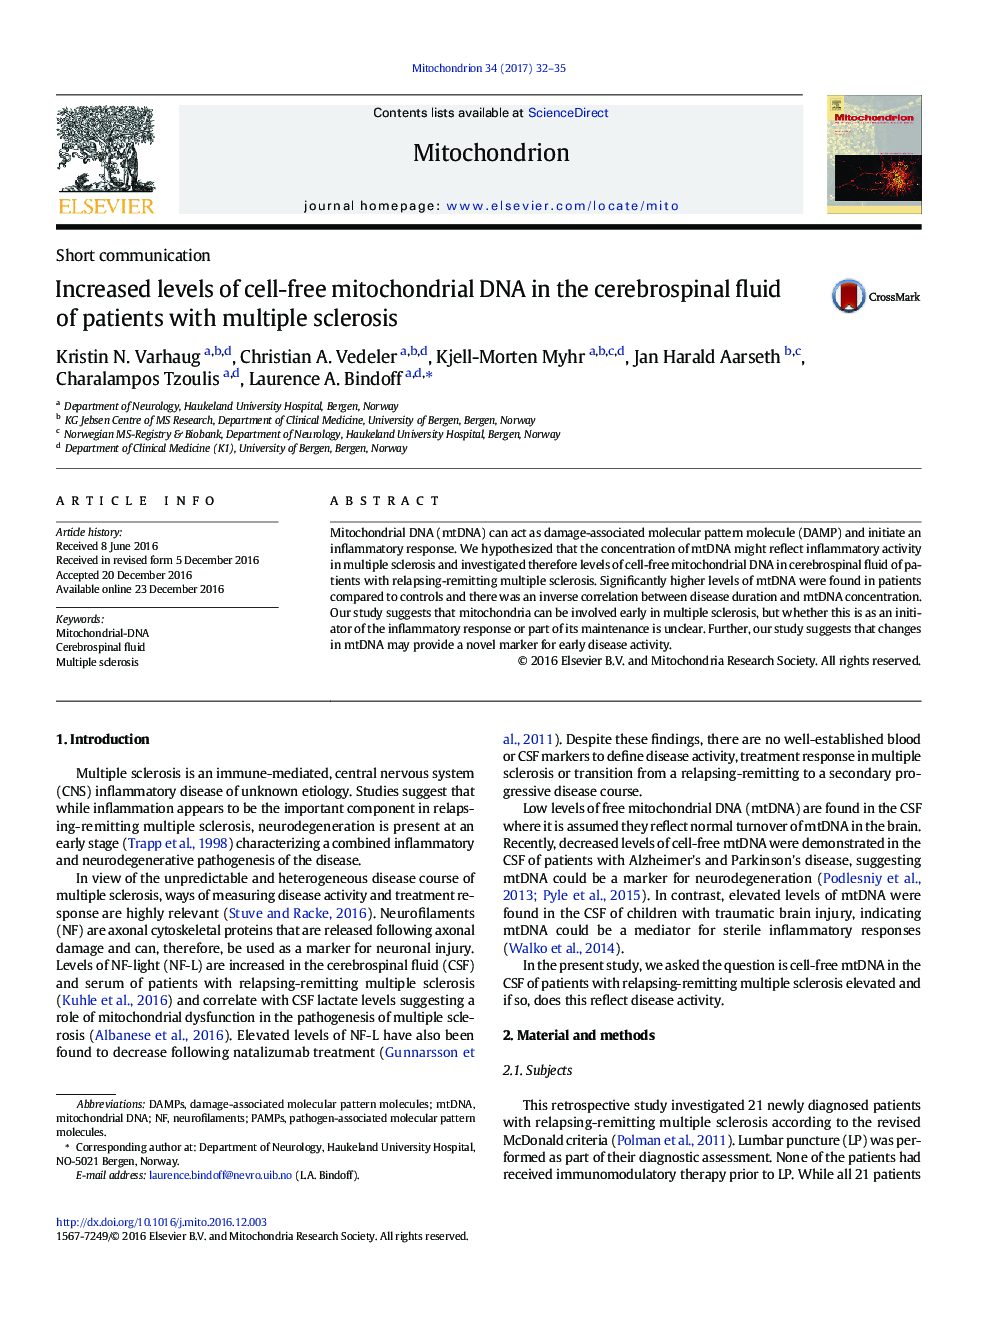 Short communicationIncreased levels of cell-free mitochondrial DNA in the cerebrospinal fluid of patients with multiple sclerosis